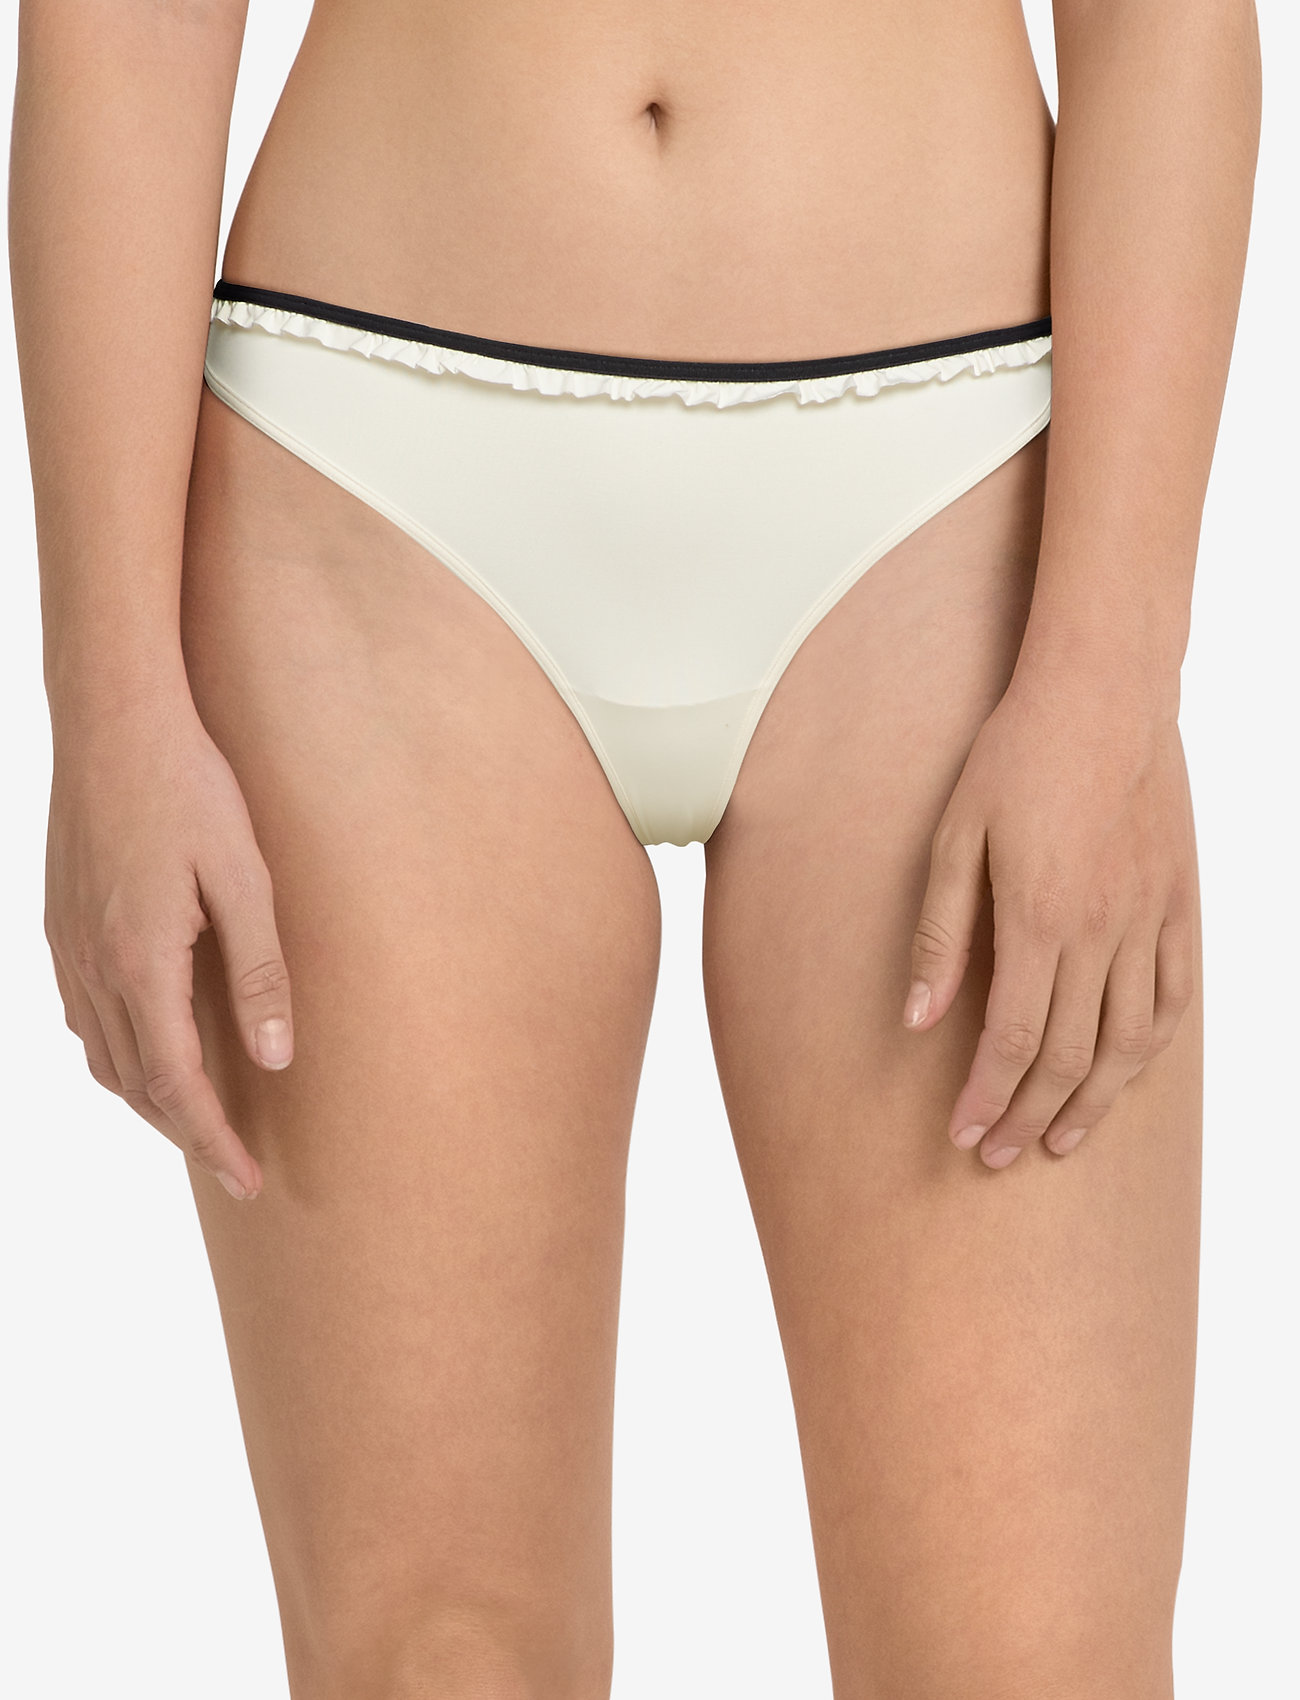 Marlies Dekkers MD SPACE ODESSEY THONG 4 IVORY-BLACK - IVORY/BLACK